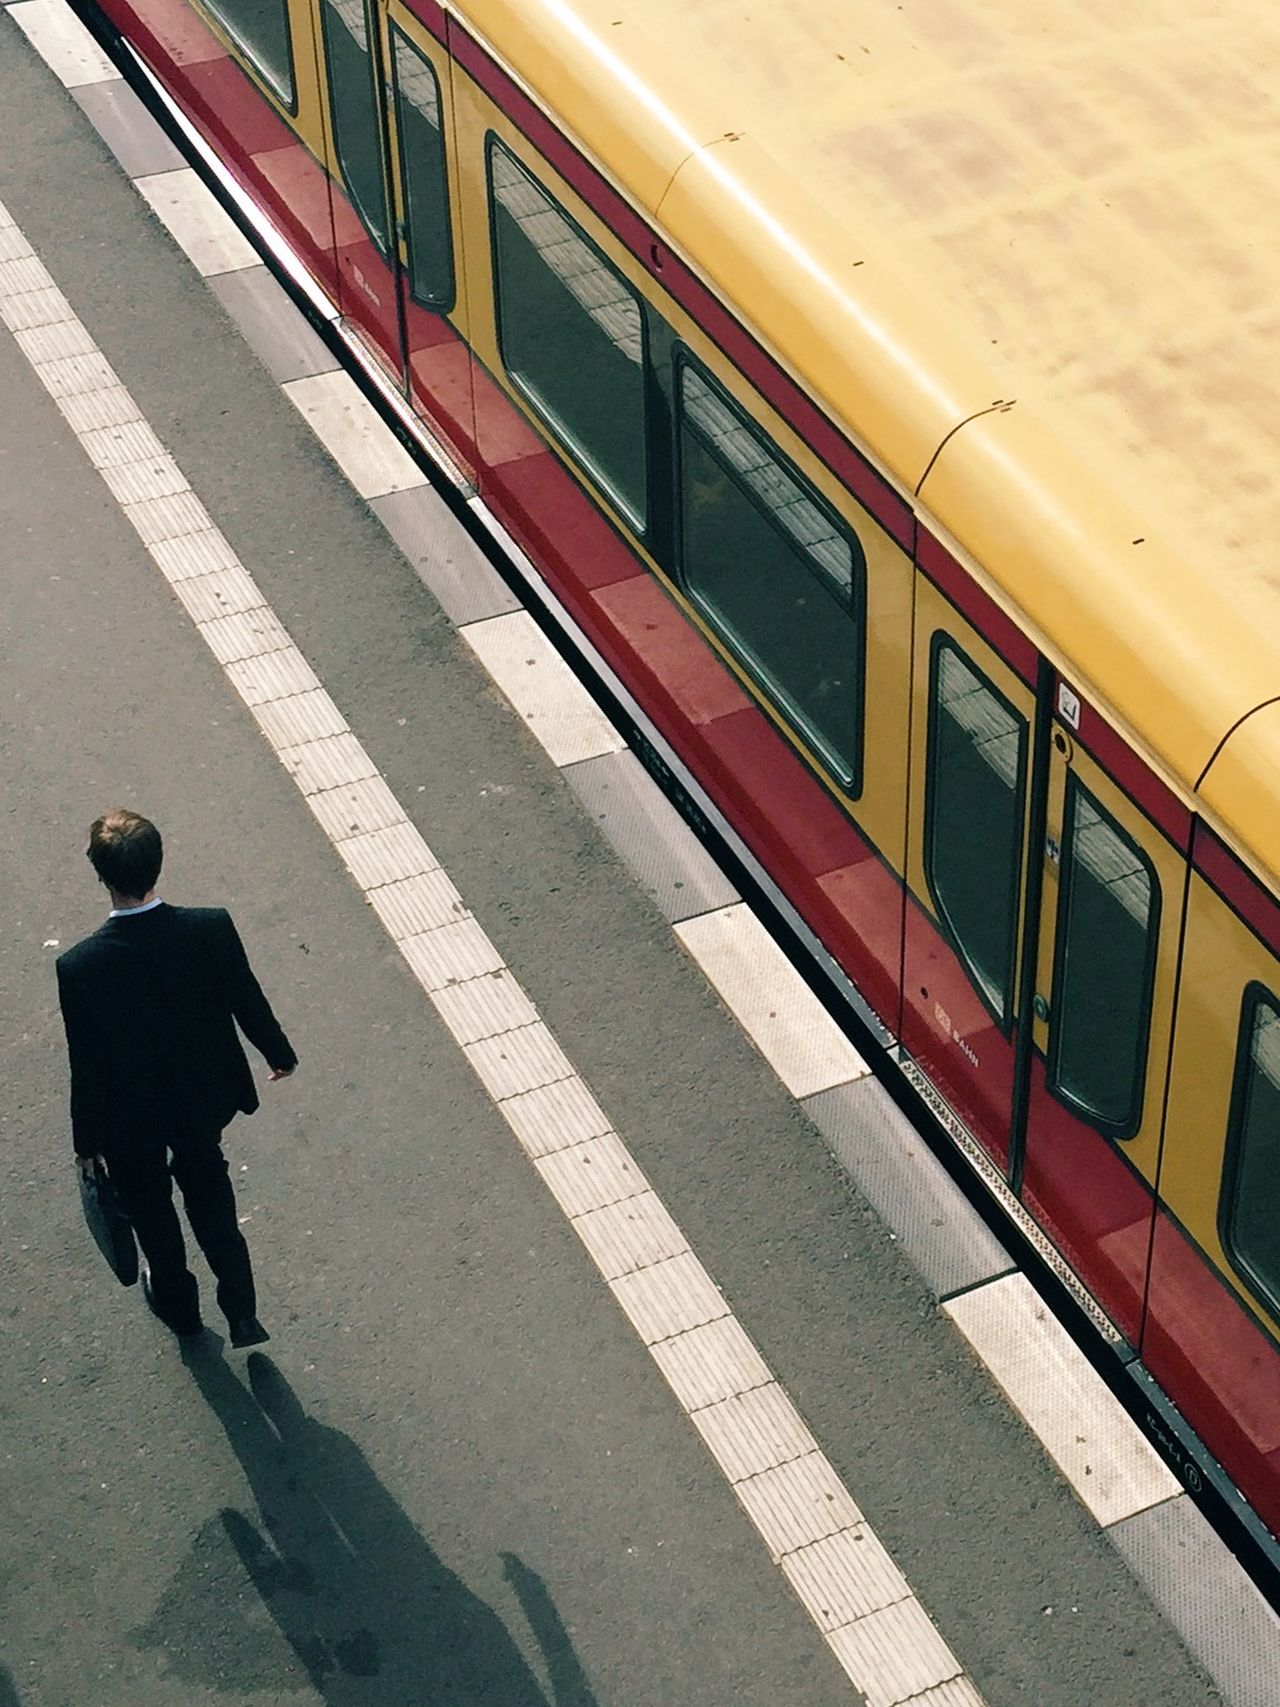 High Angle View Of Man Walking On Railroad Station